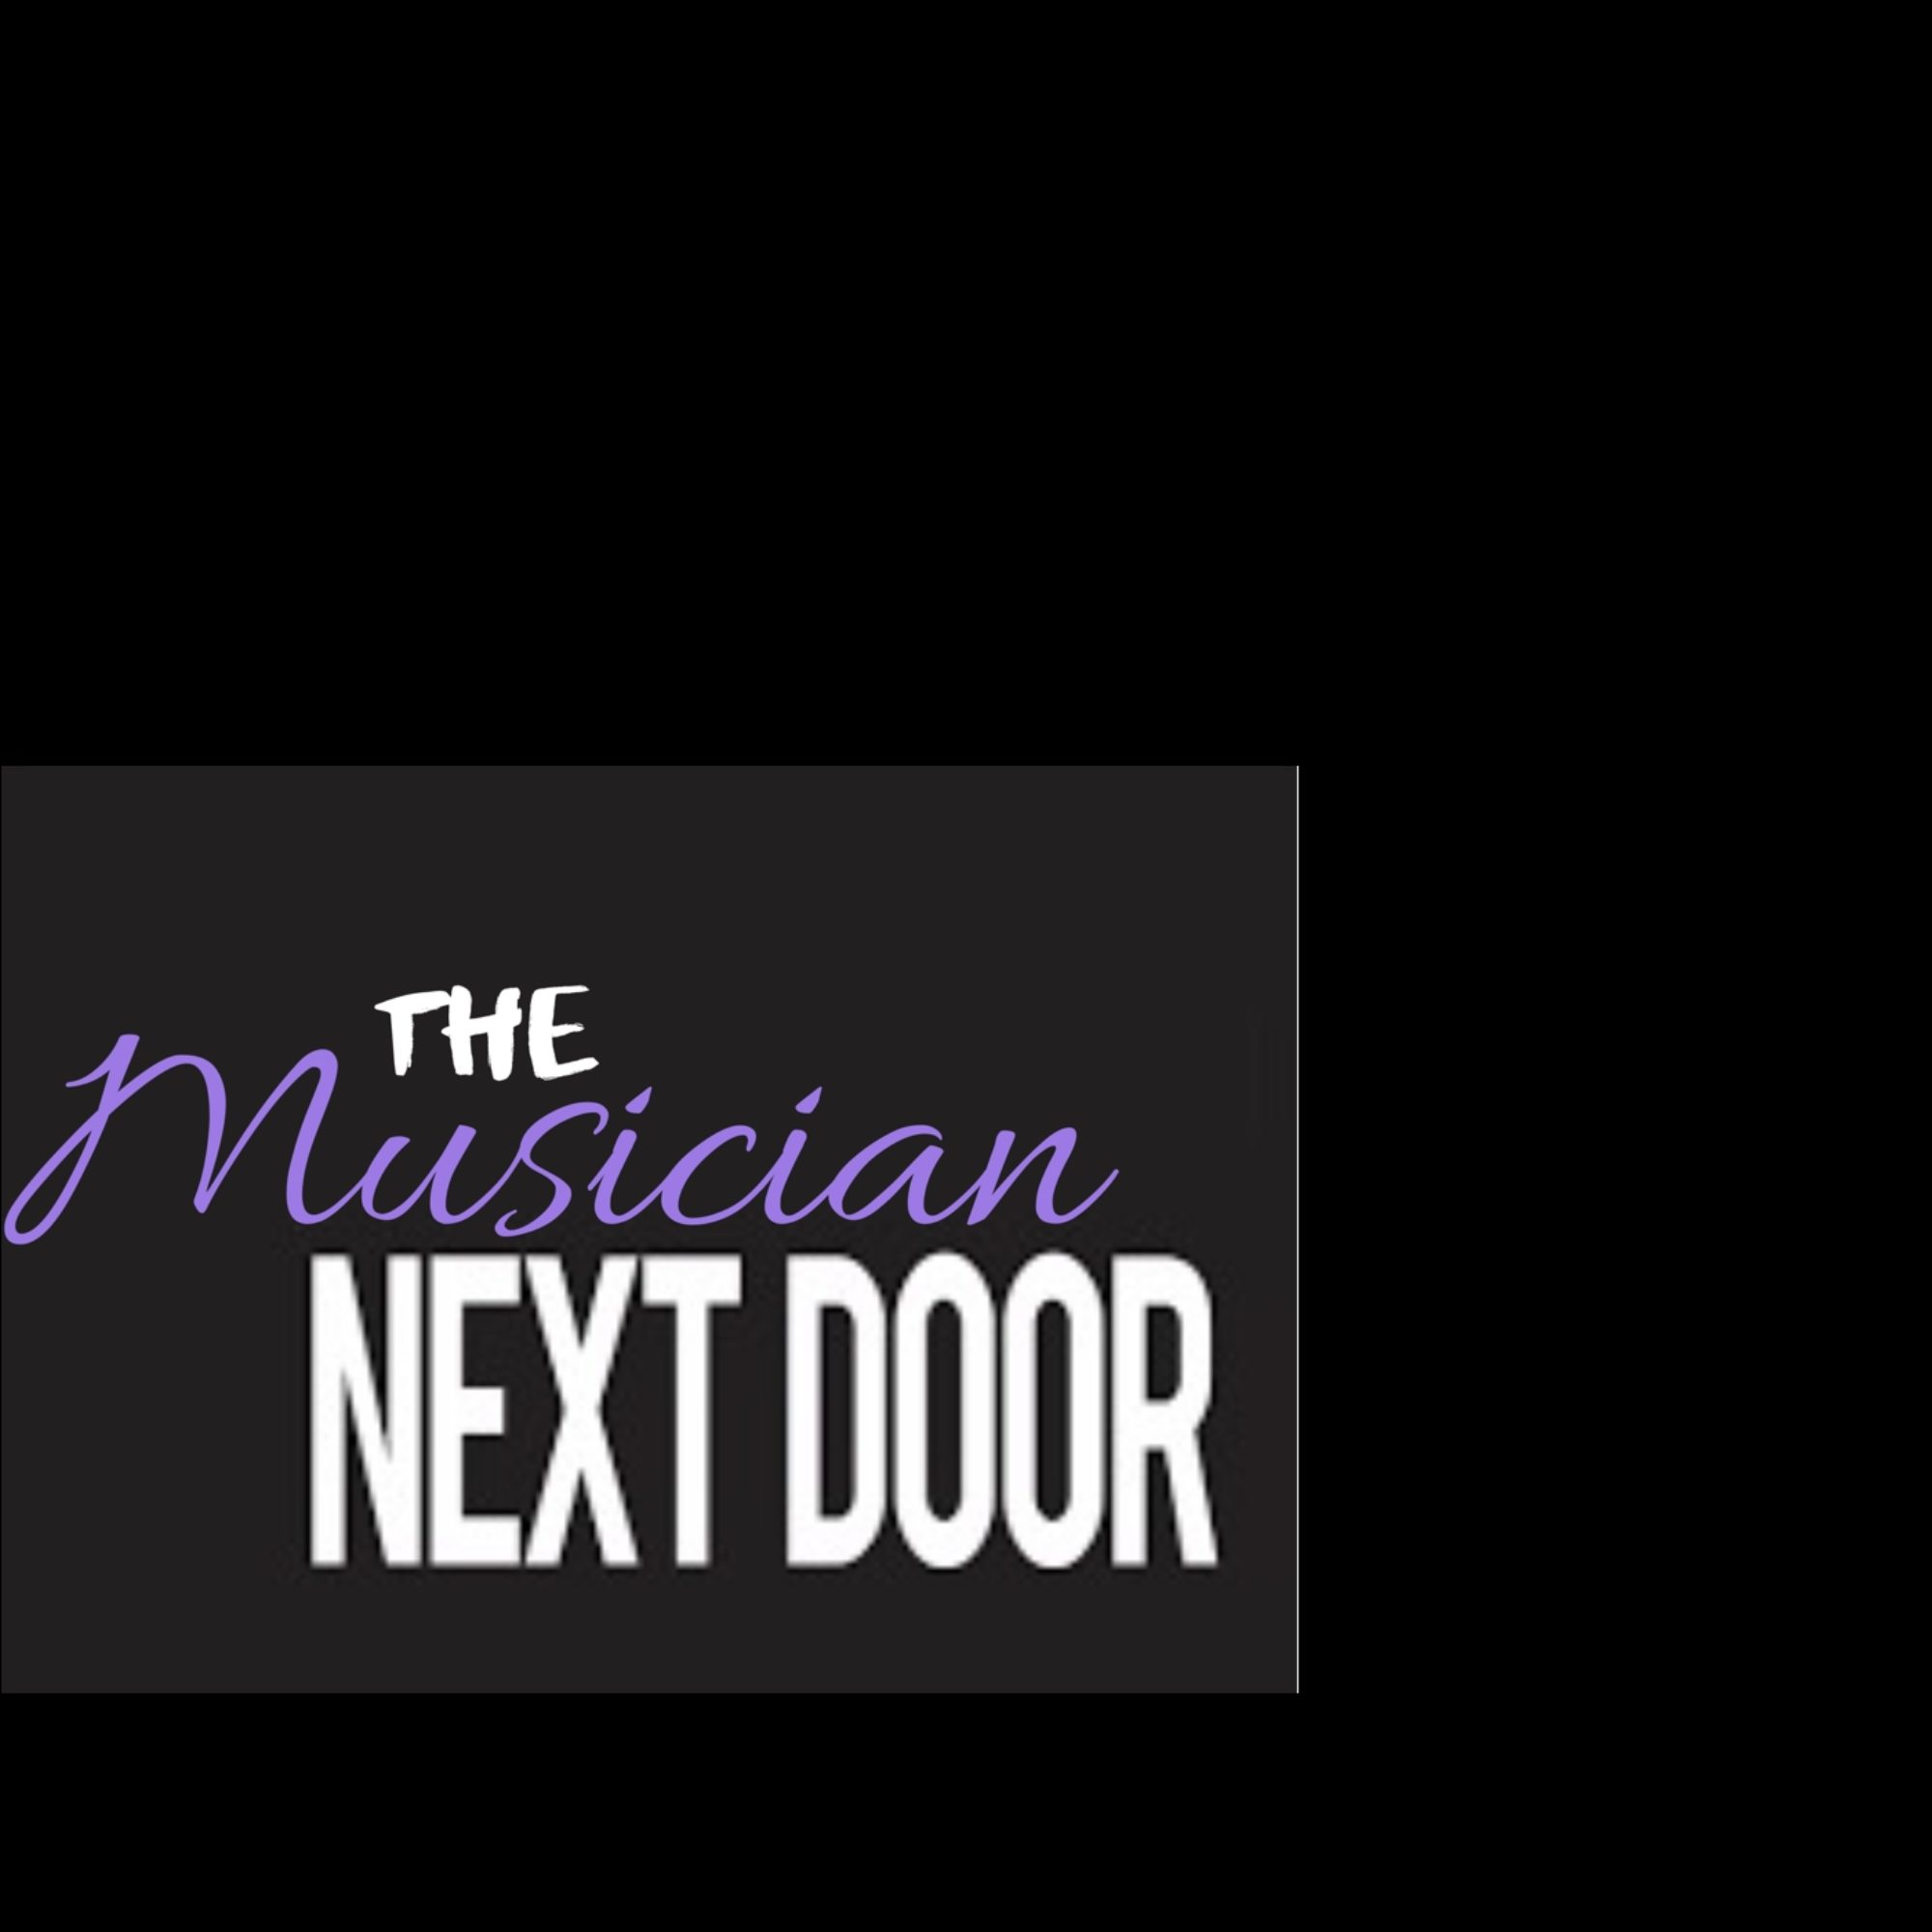 The Musician Next Door